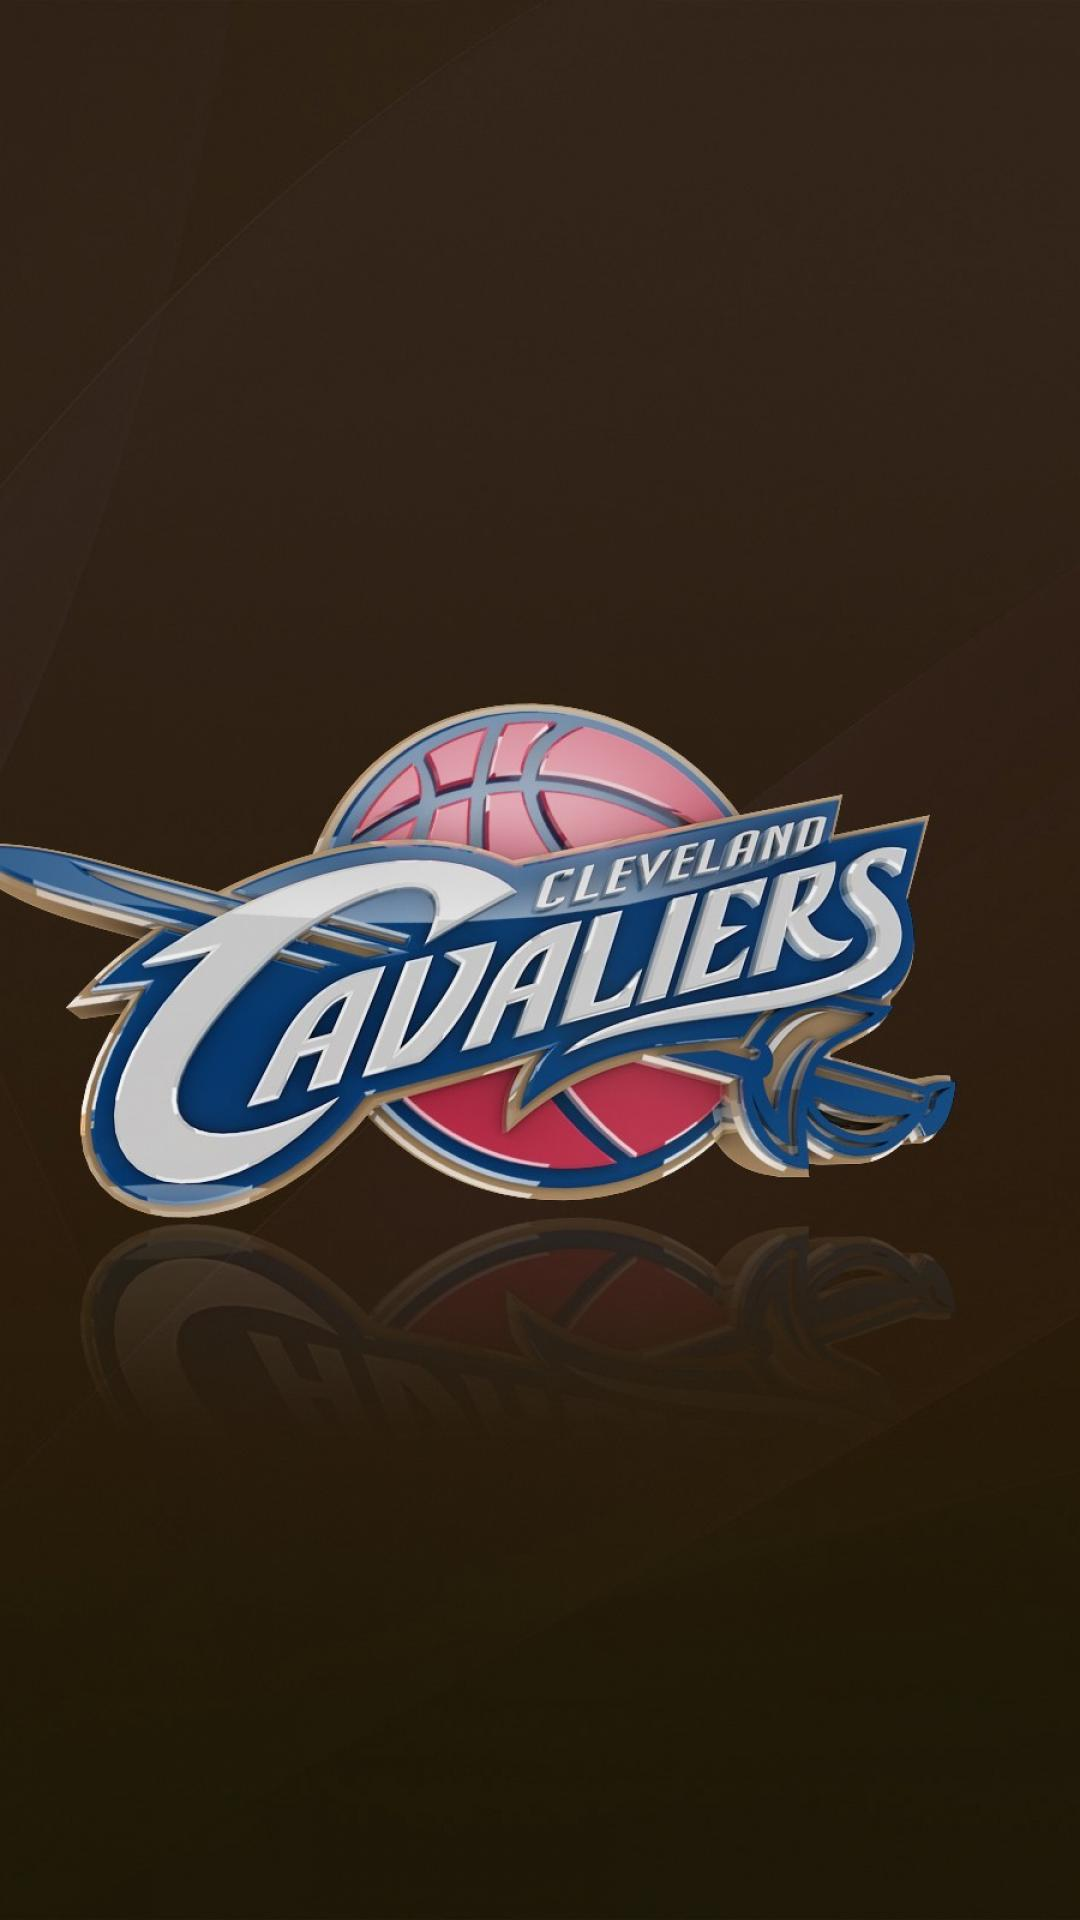 Cleveland cavaliers nba basketball logos sports wallpaper 103441 1080x1920